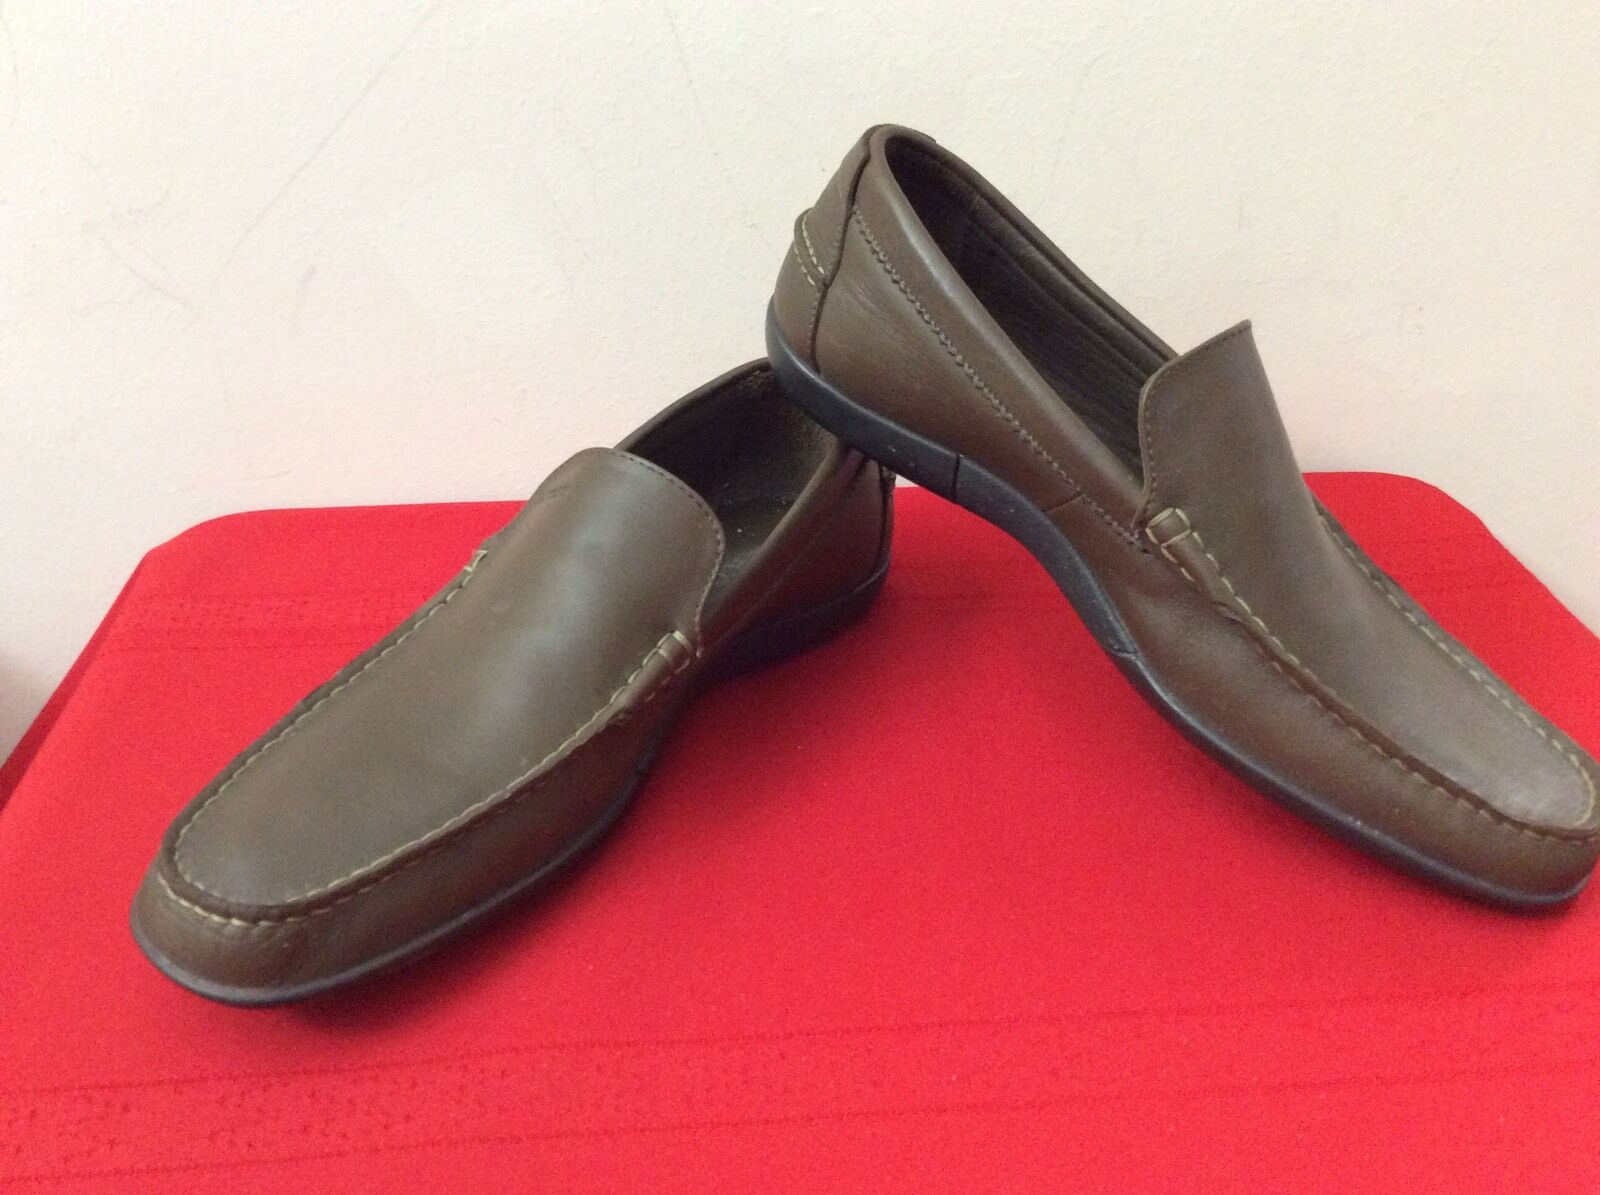 Lacoste Mens  Leather Loafers in Dark Brown 8. US.  (b9)